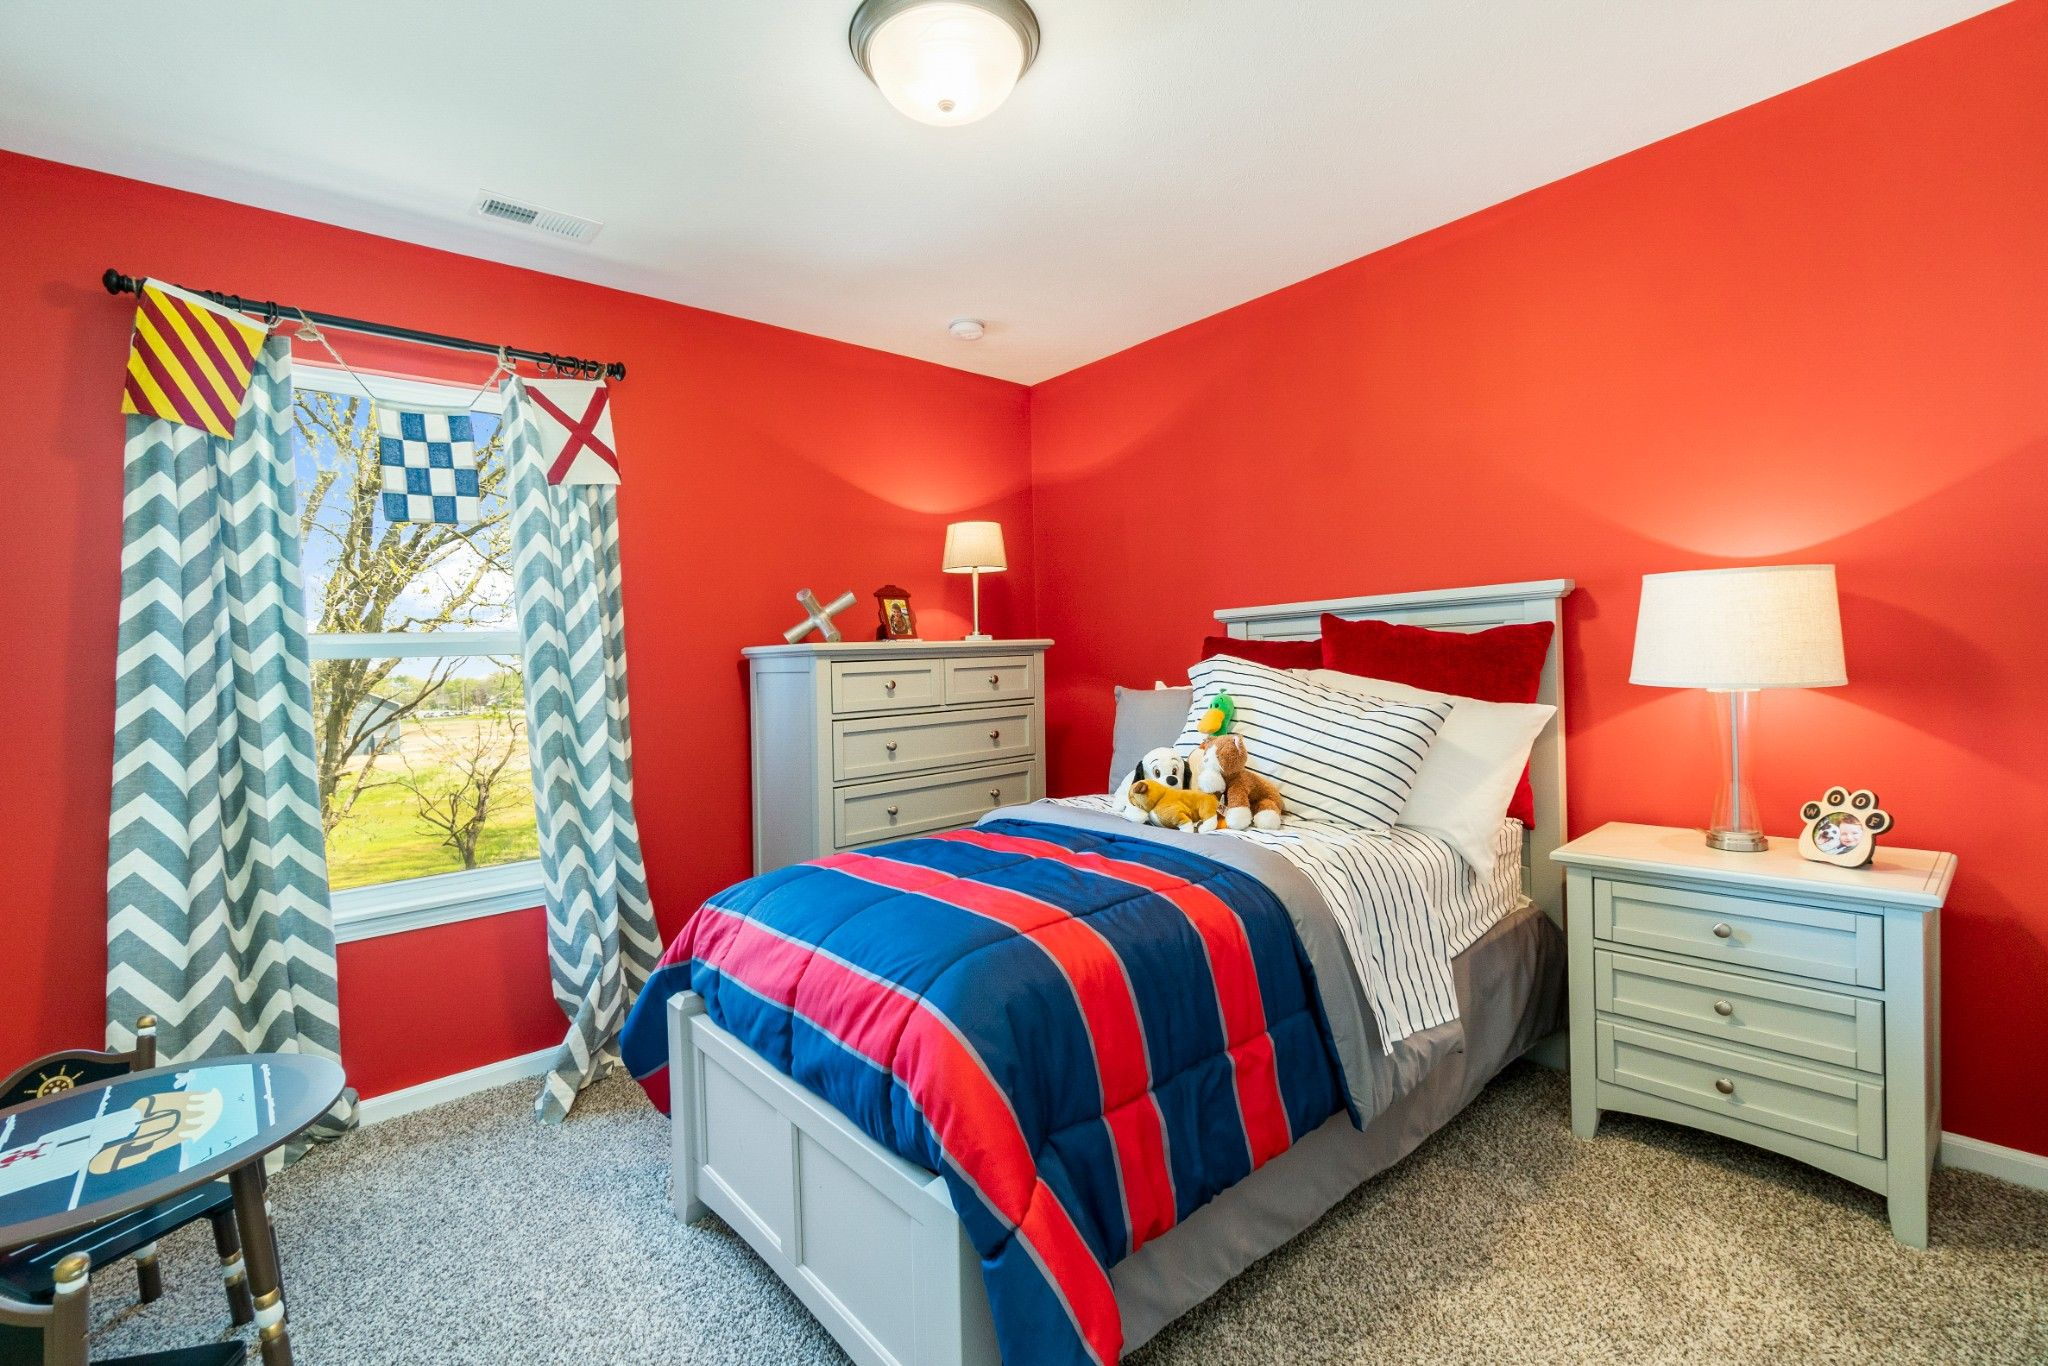 Bedroom featured in the Kipling By Olthof Homes in Gary, IN